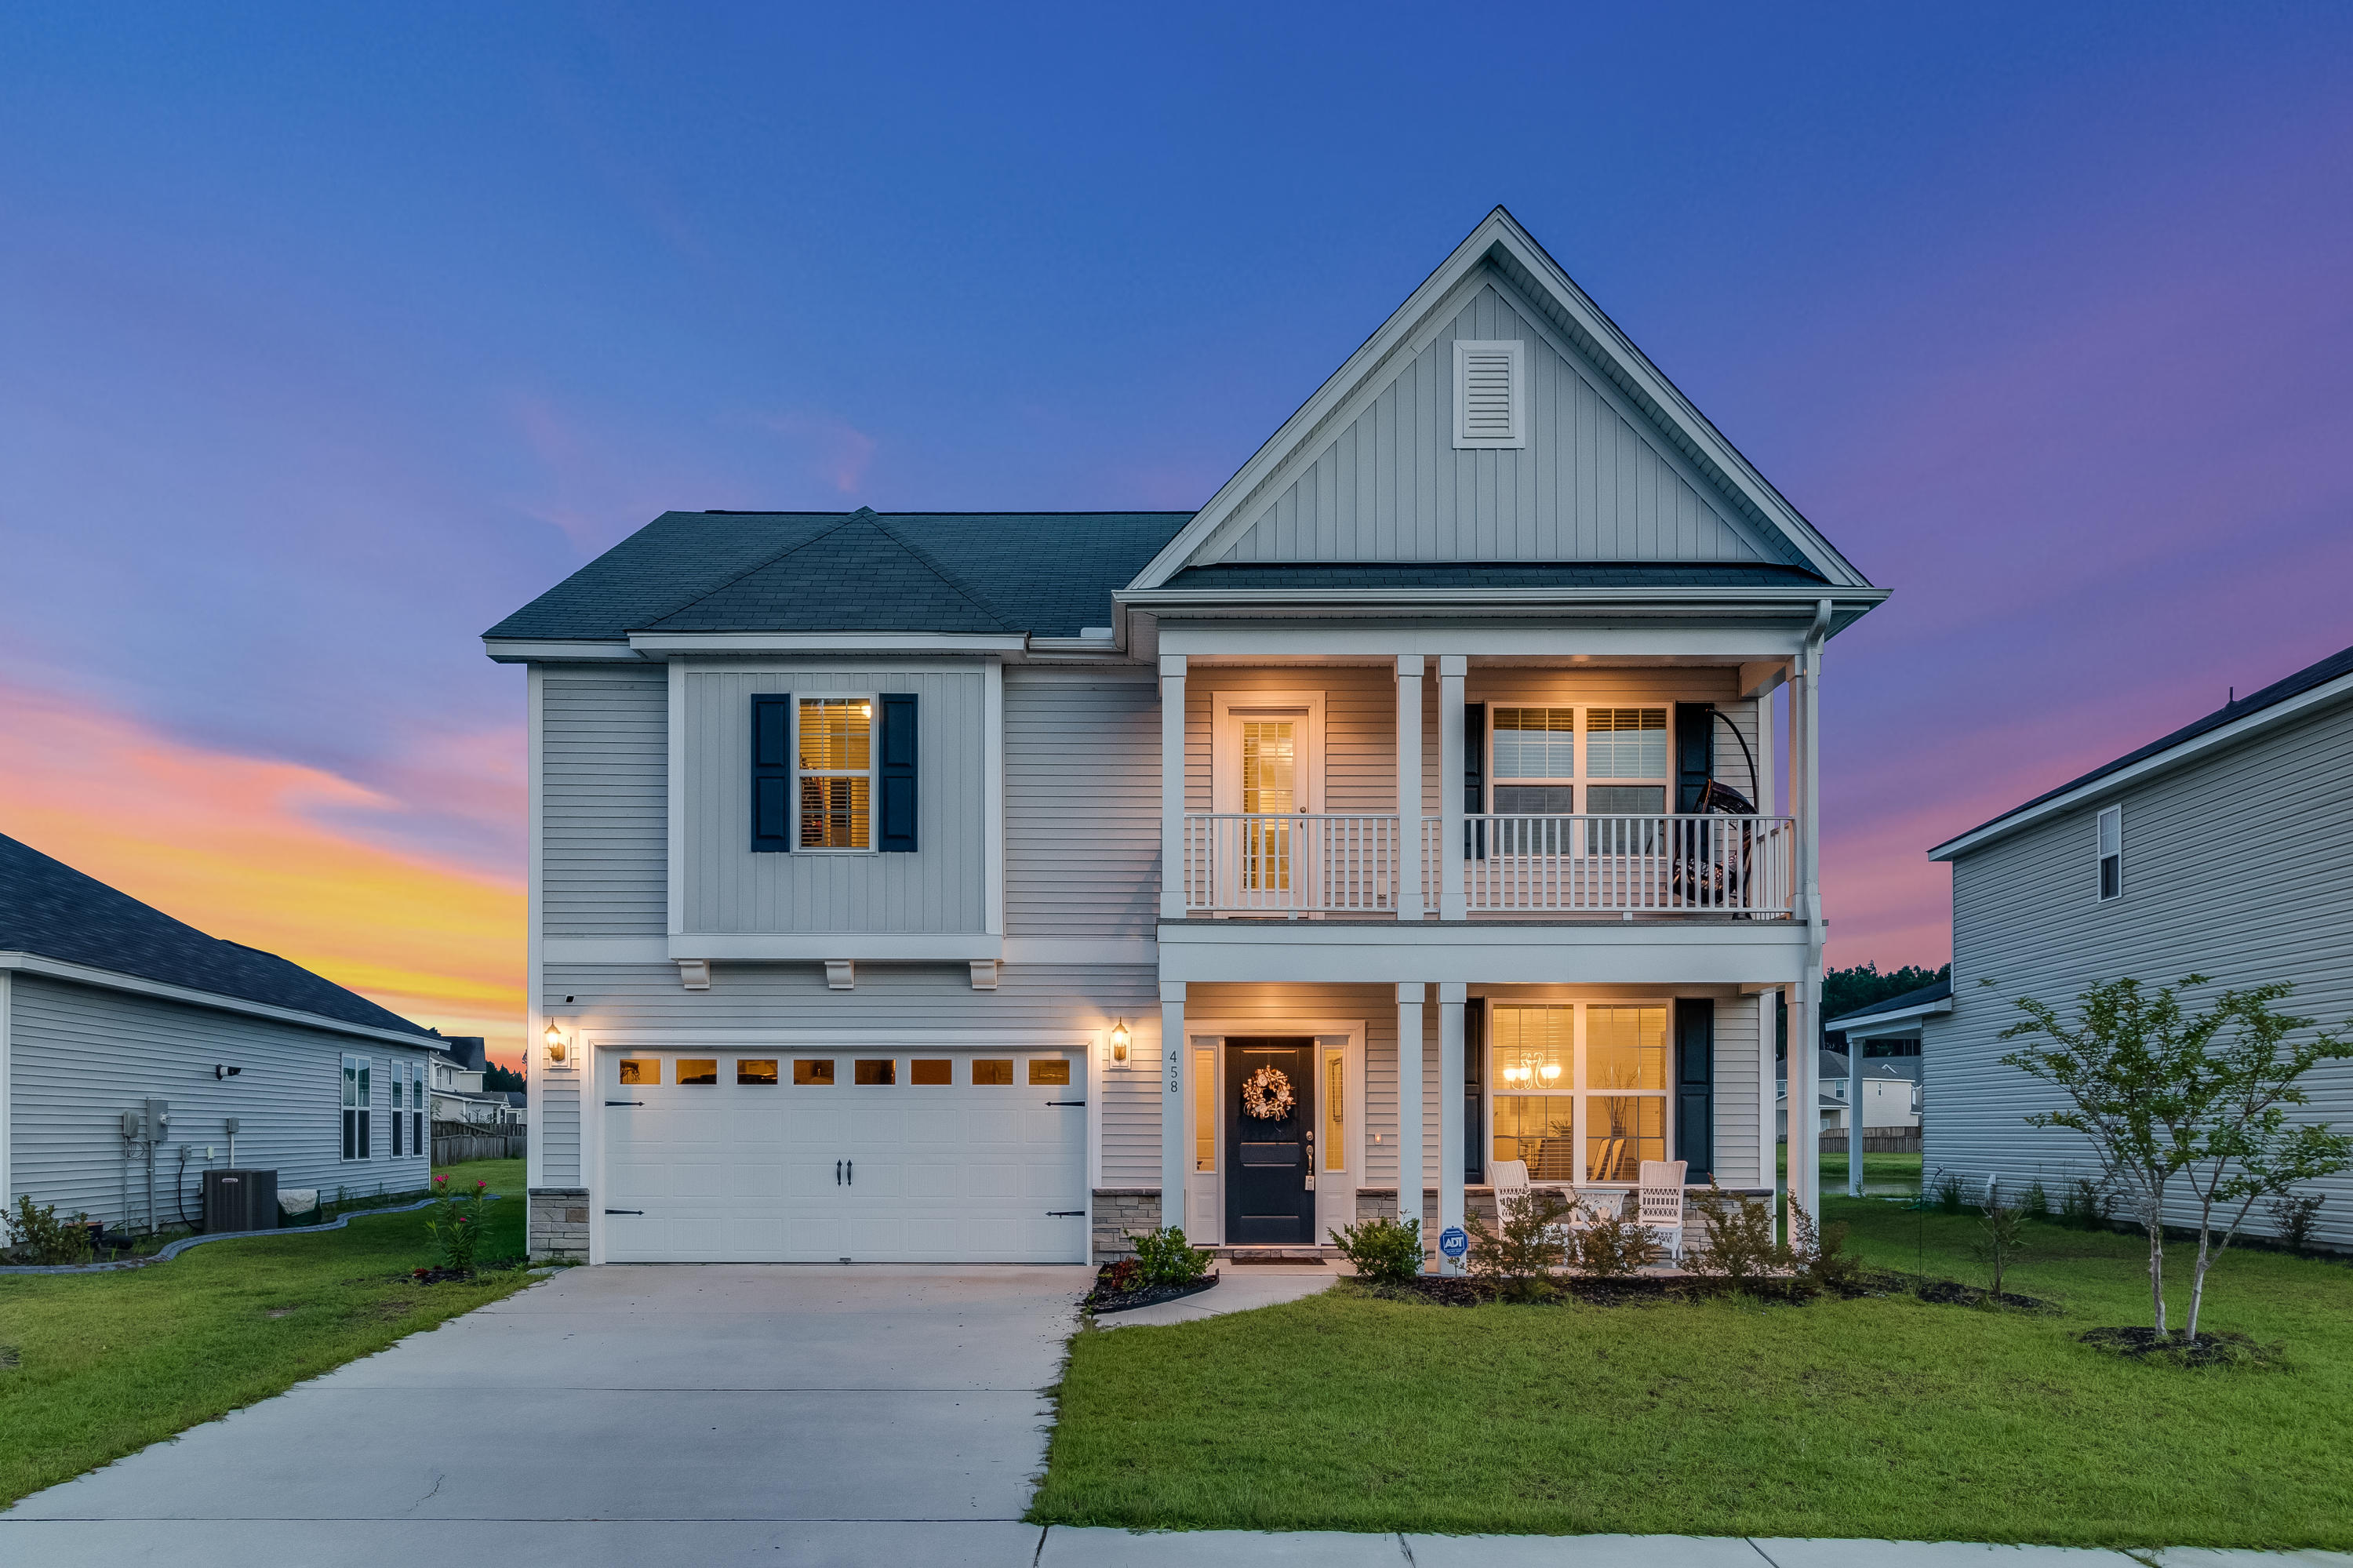 458 Flat Rock Lane Summerville, SC 29486